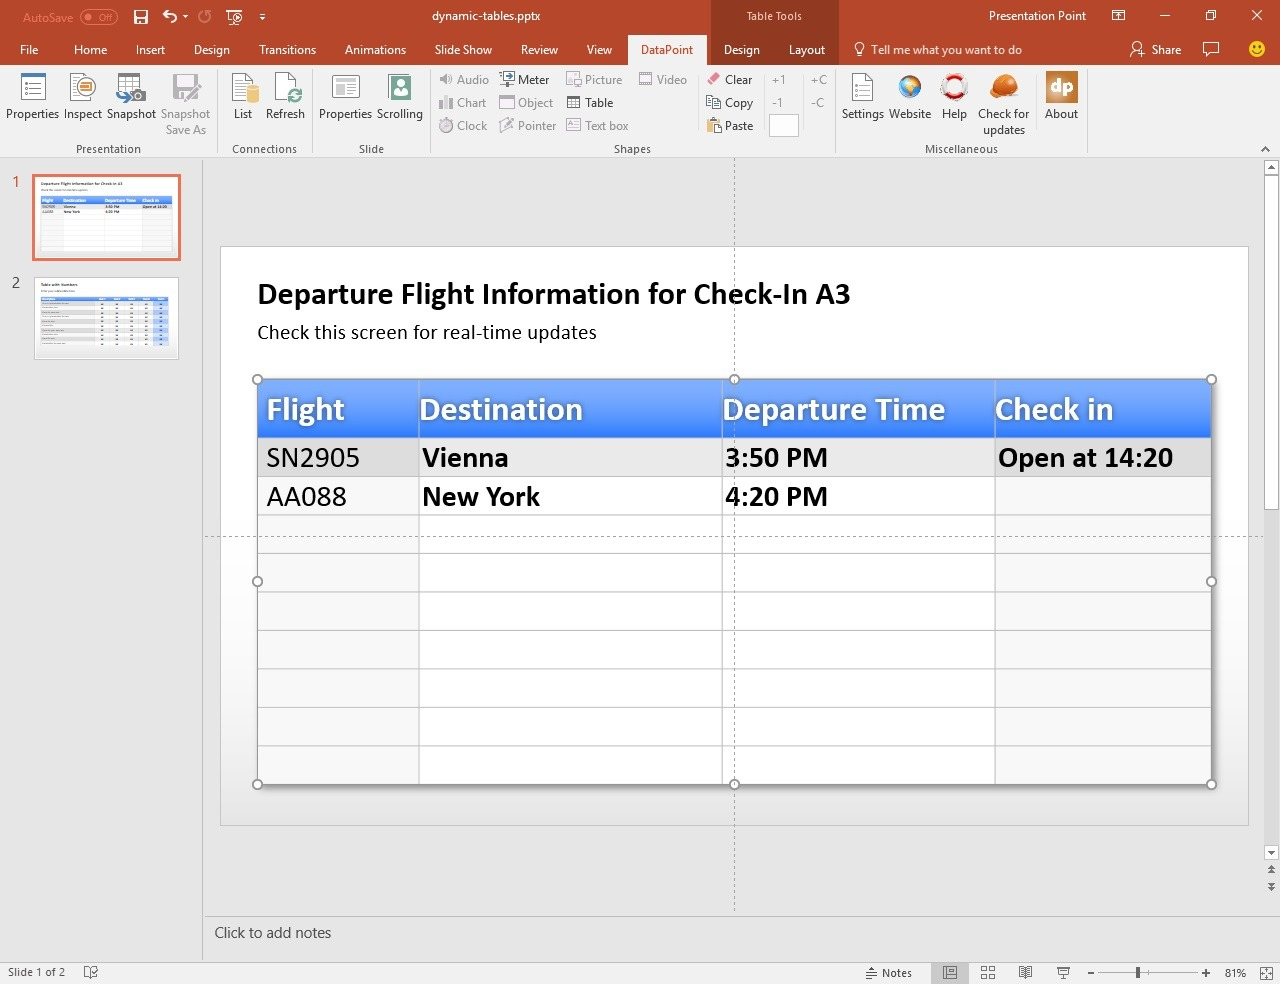 PowerPoint Tables with Real-Time Data • PresentationPoint